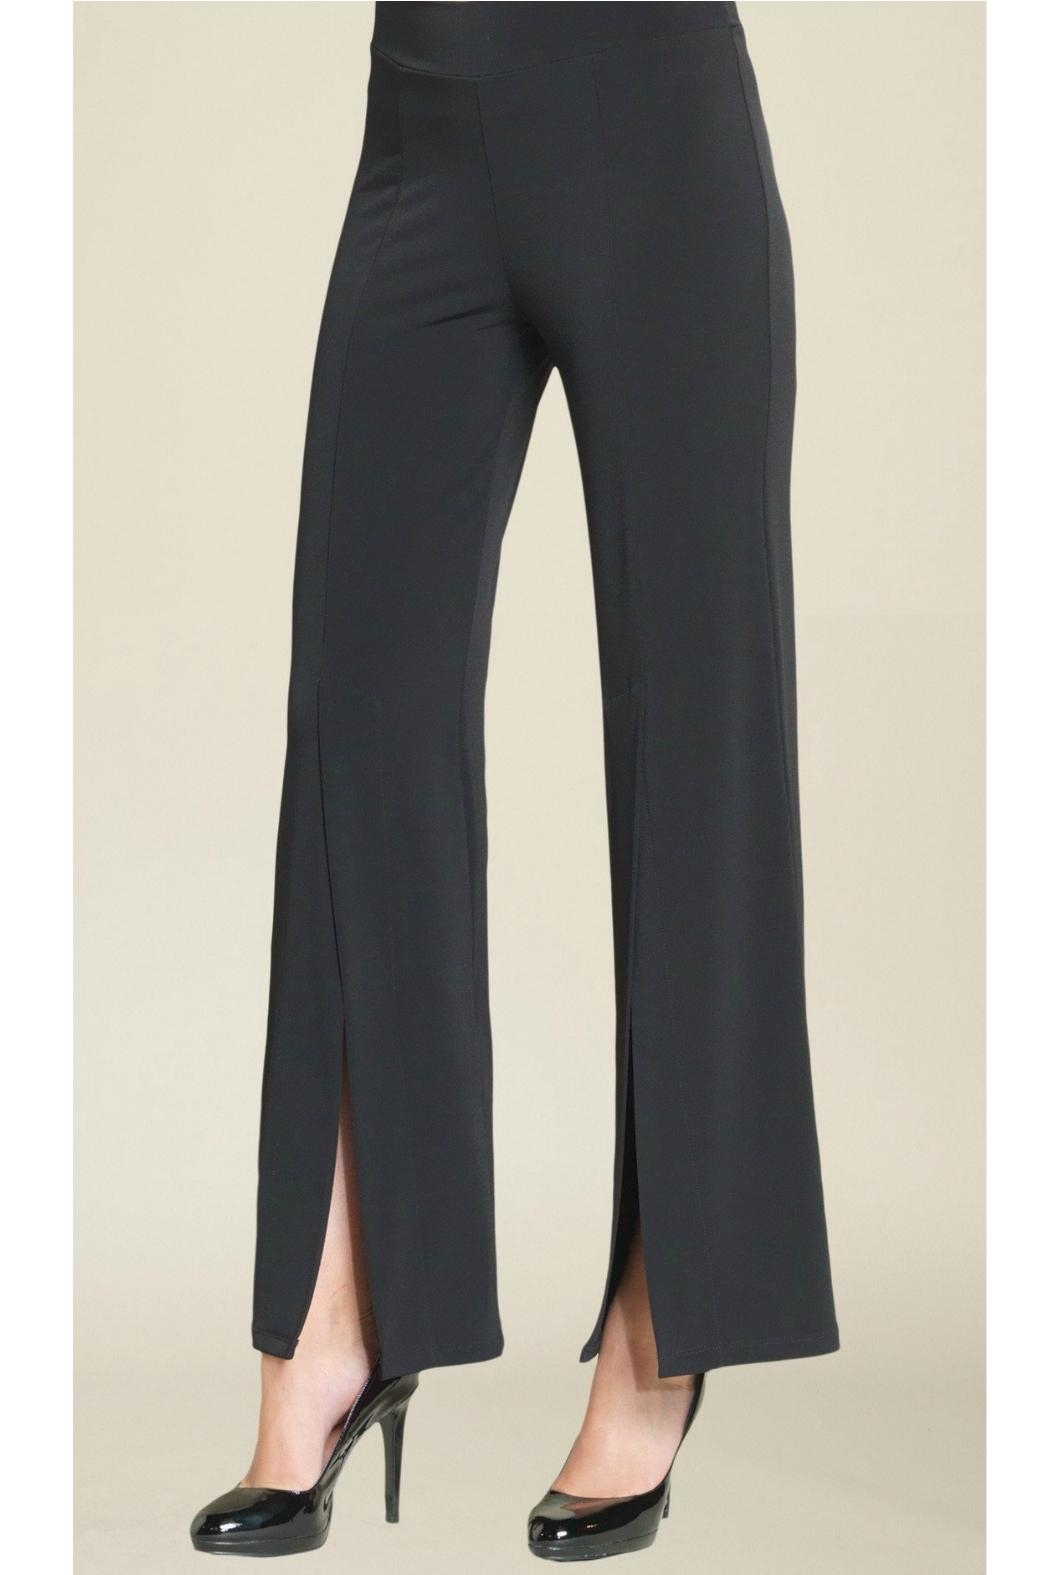 Clara Sunwoo Soft Knit Pants - Main Image